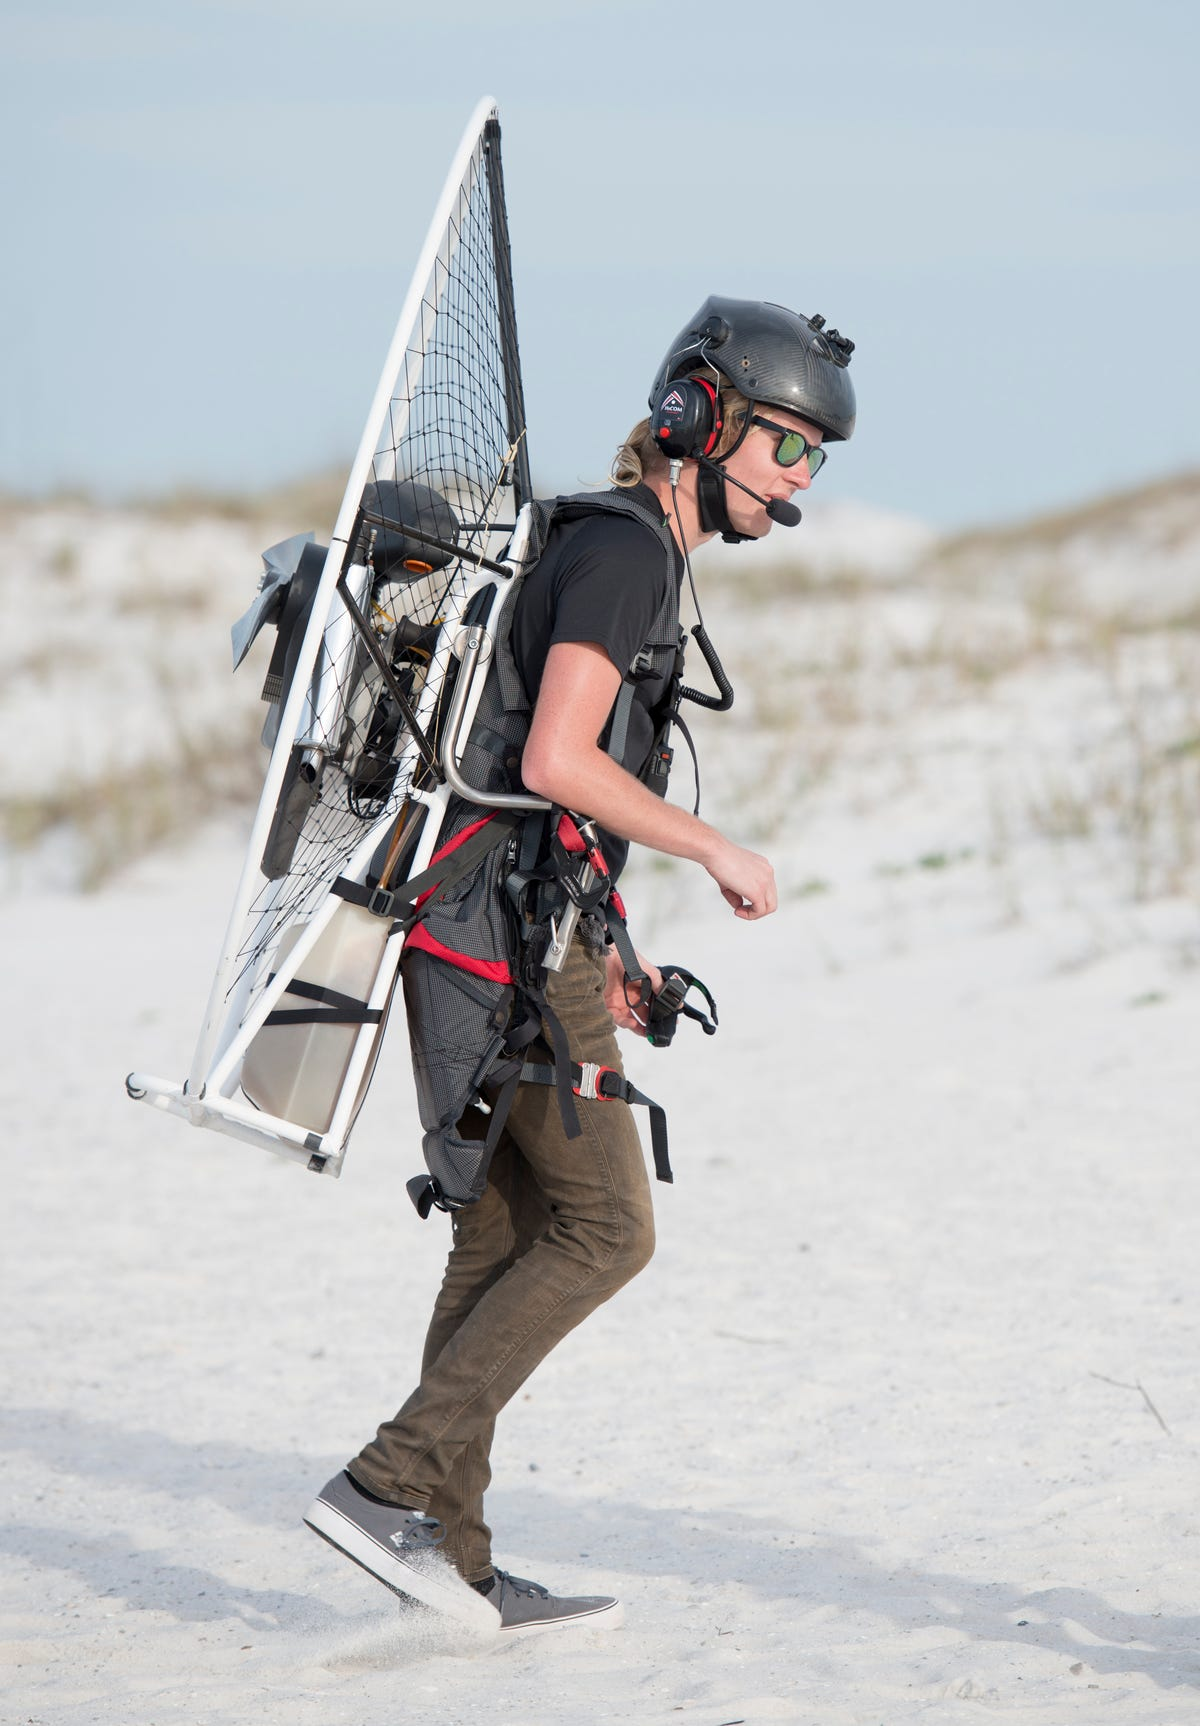 Powered paragliding is taking off on Pensacola Beach